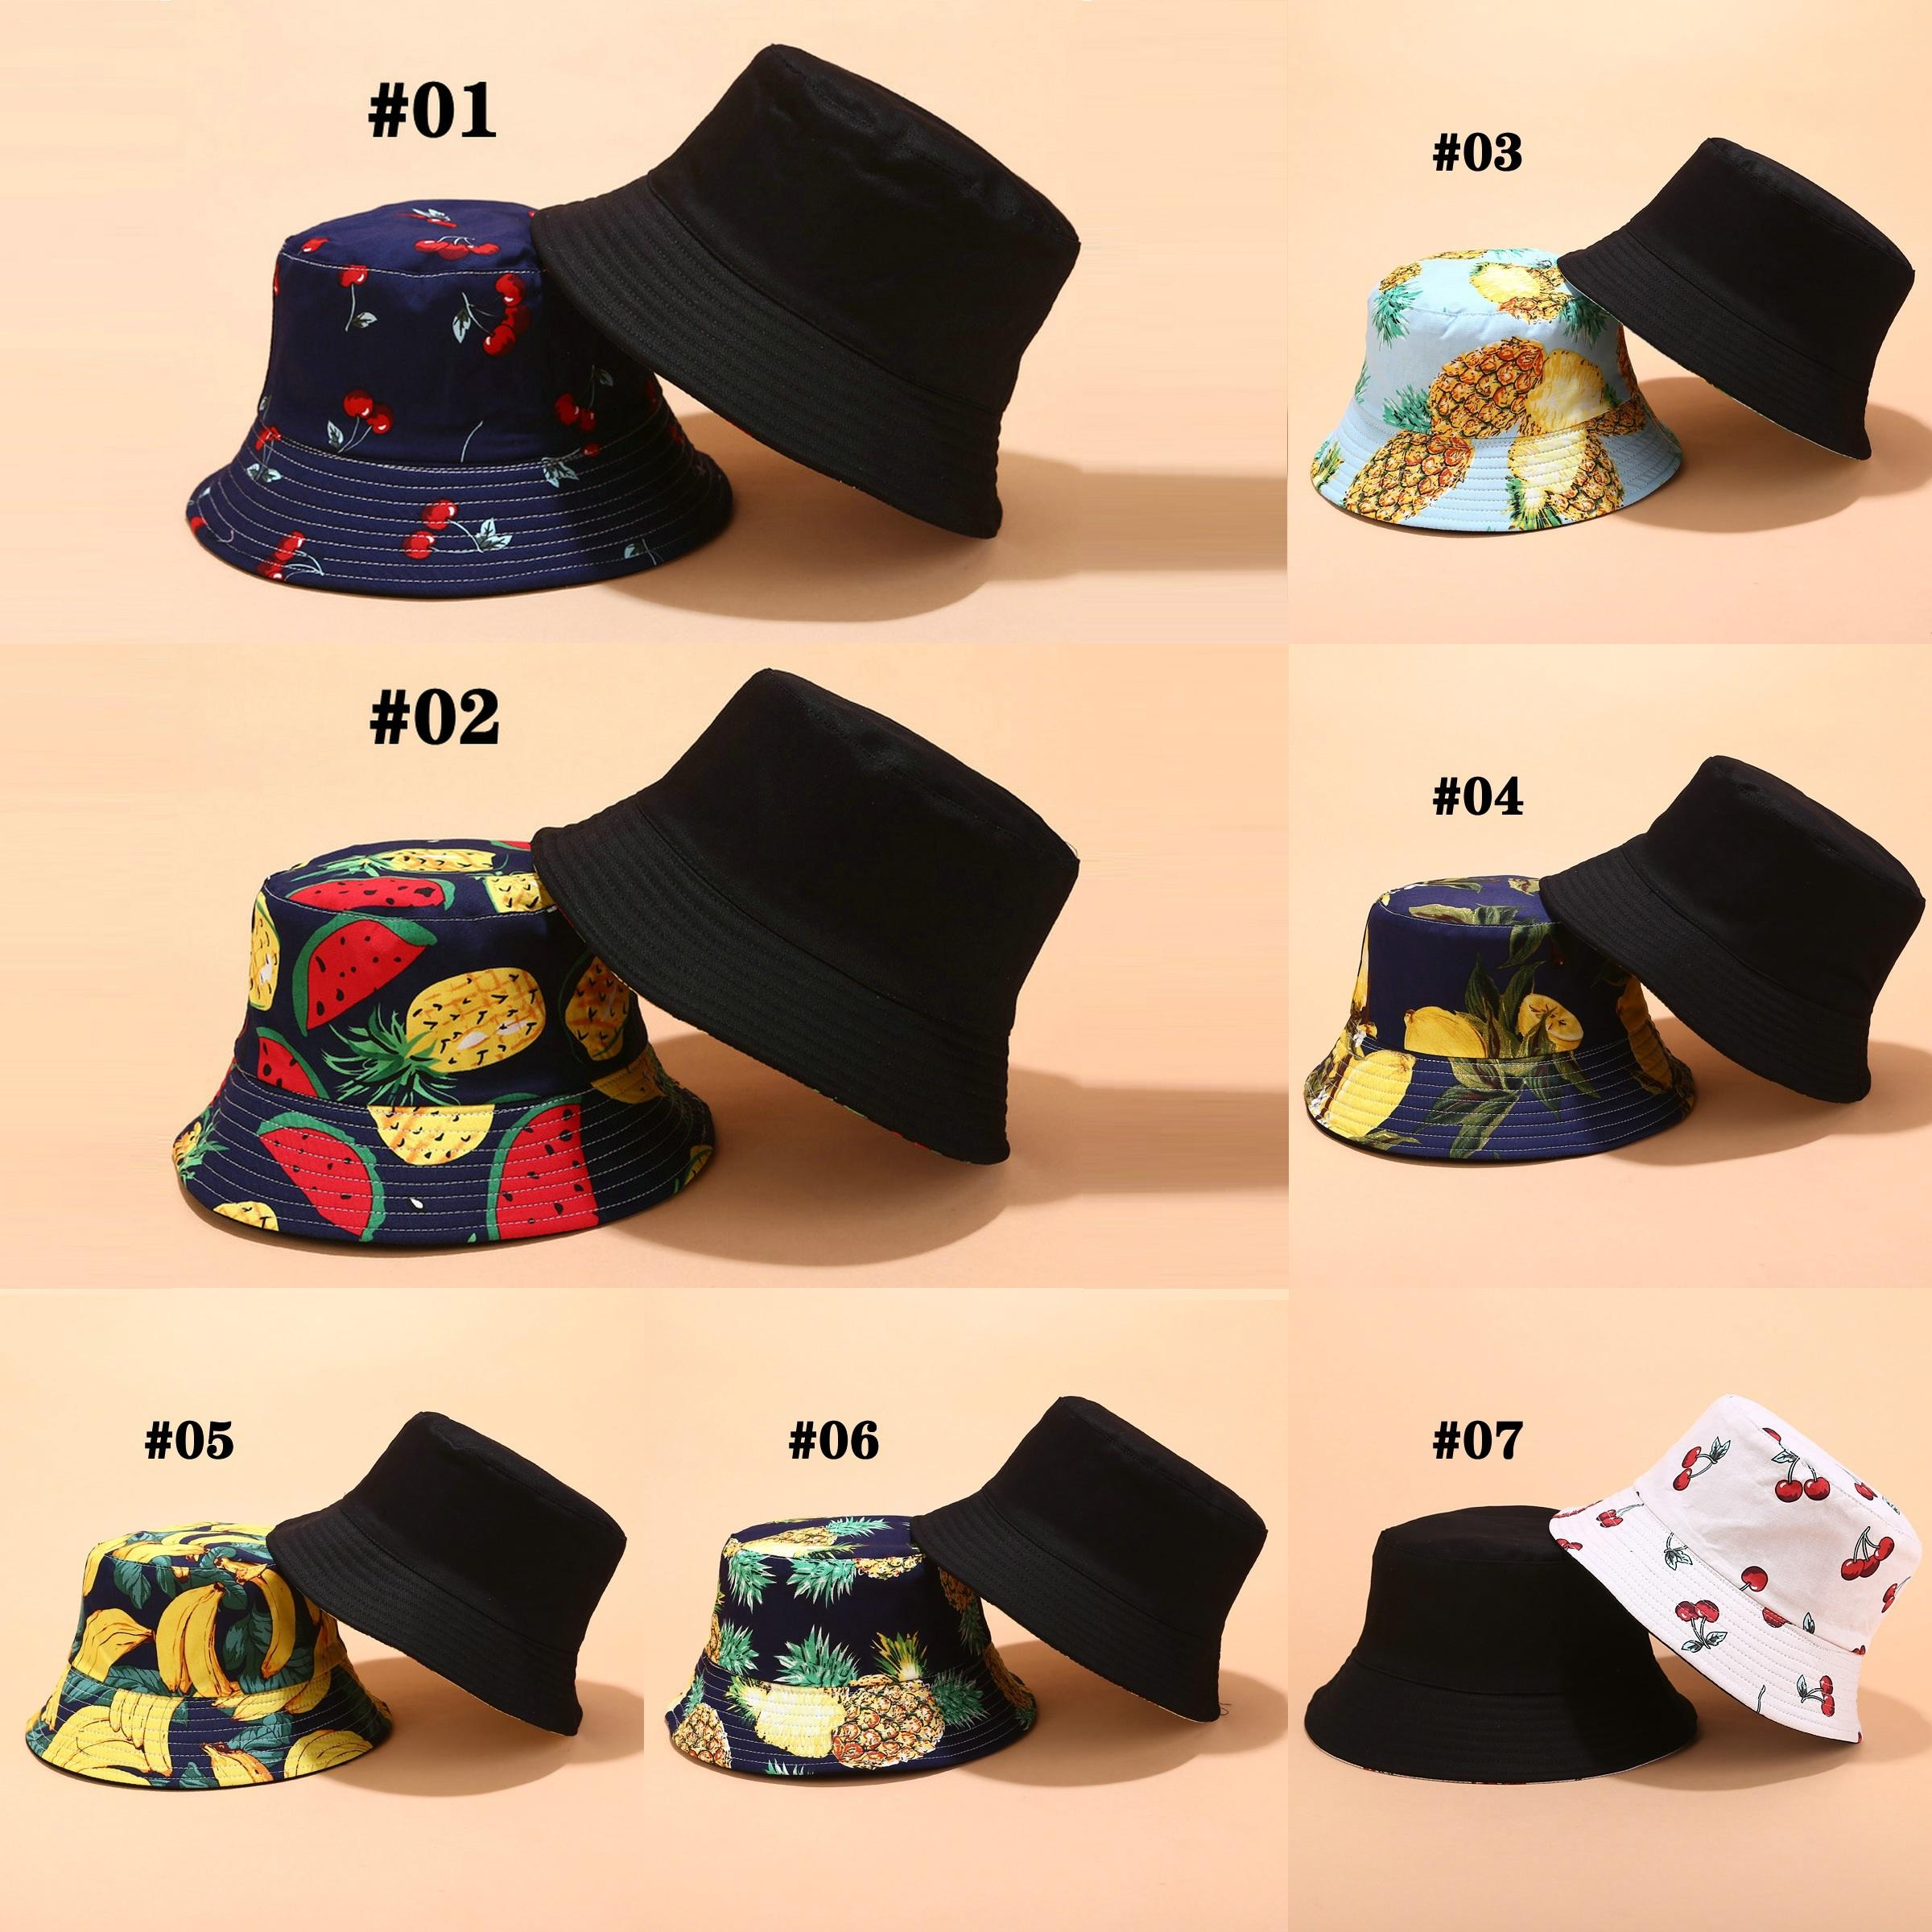 2021 Fisherman hats with tropical print and fruit design for men women summer outdoor sunshade hat